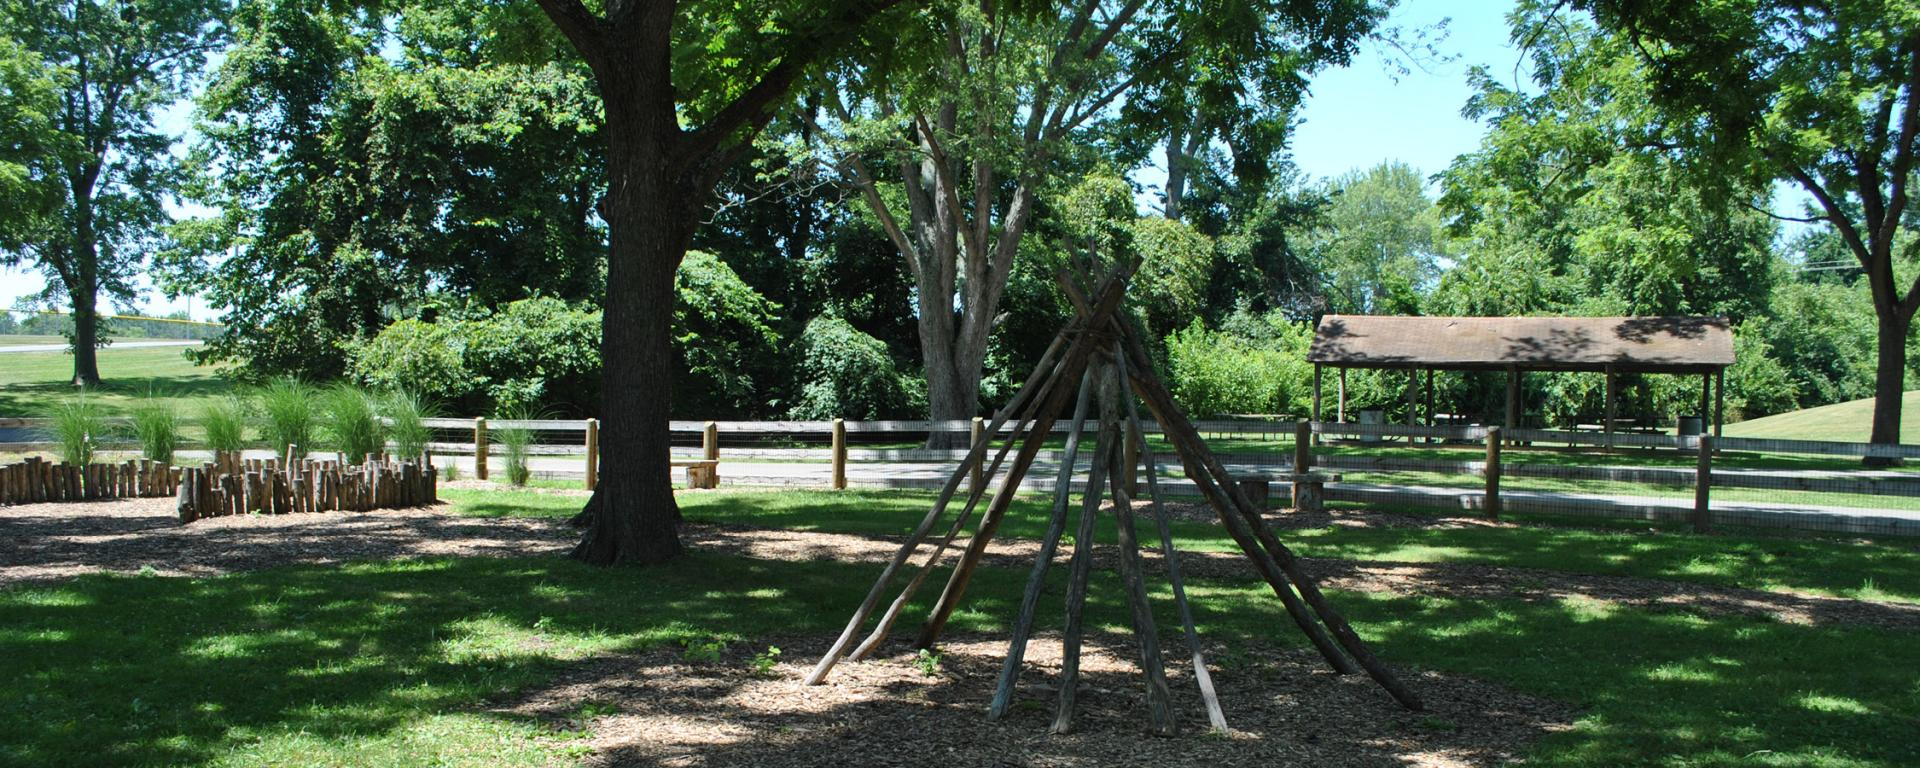 climbing structure at park